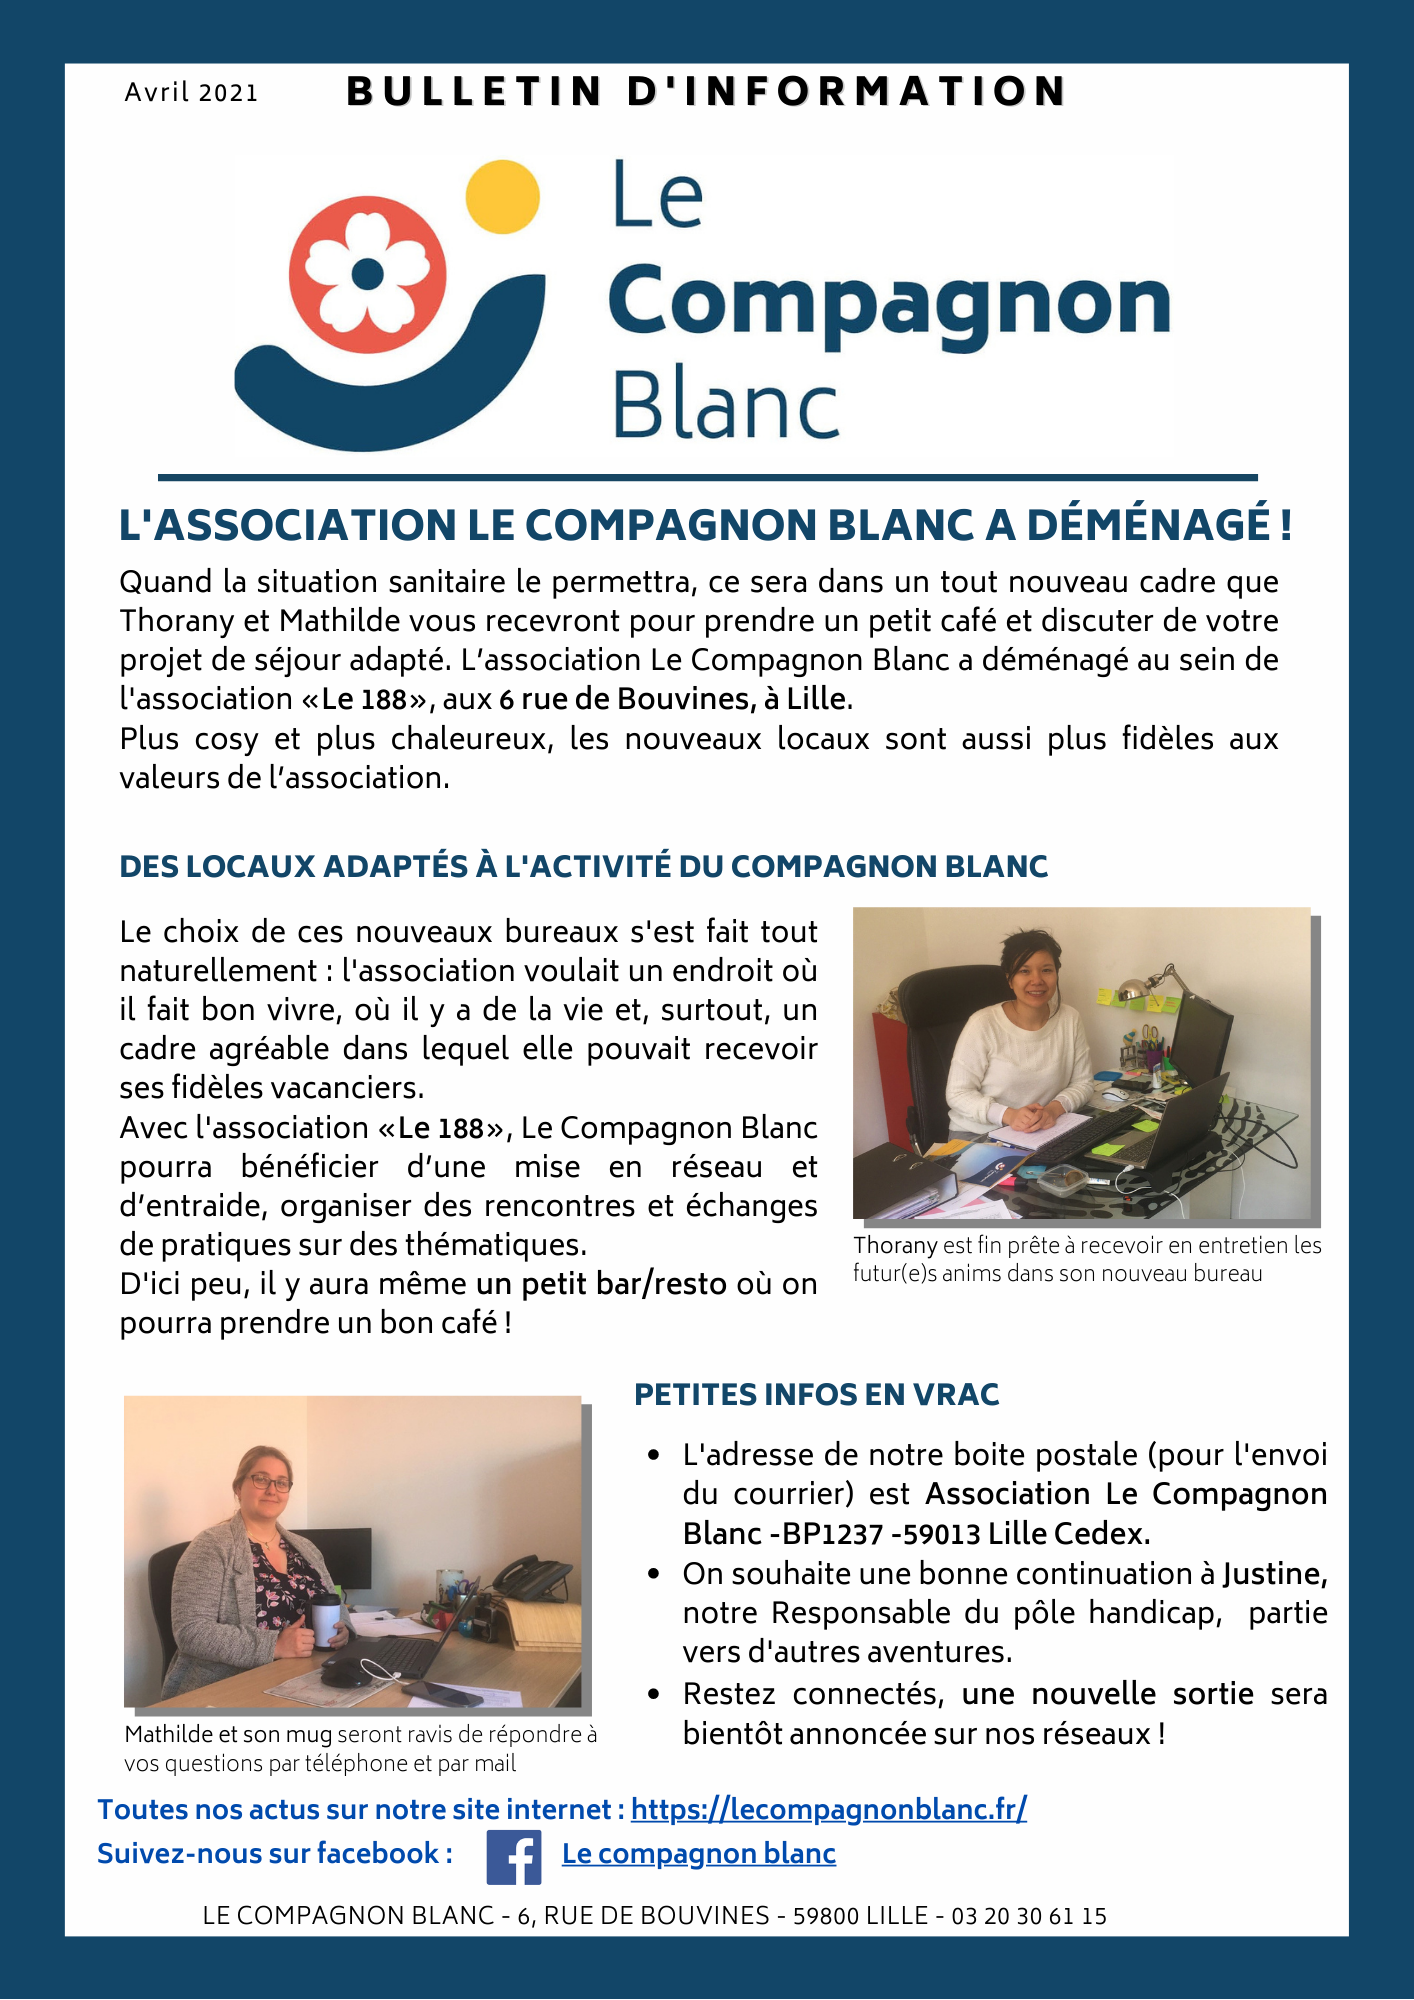 Newsletter Le Compagnon Blanc - Avril 2021 - Lille